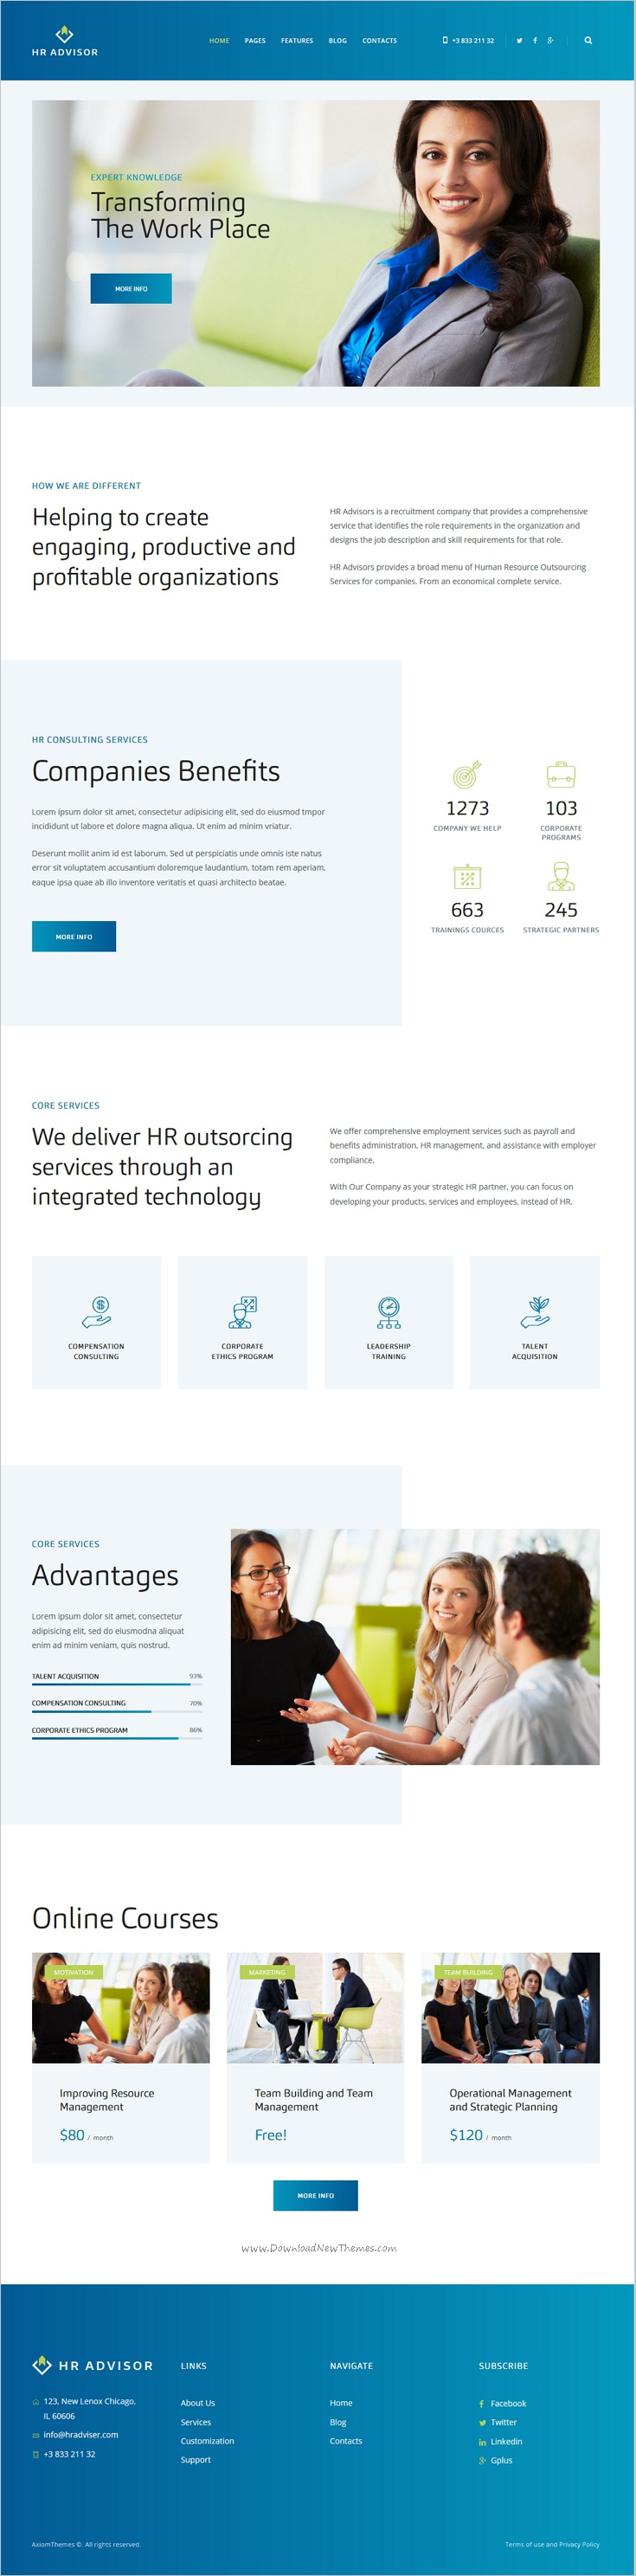 hr advisor human resources business consulting business